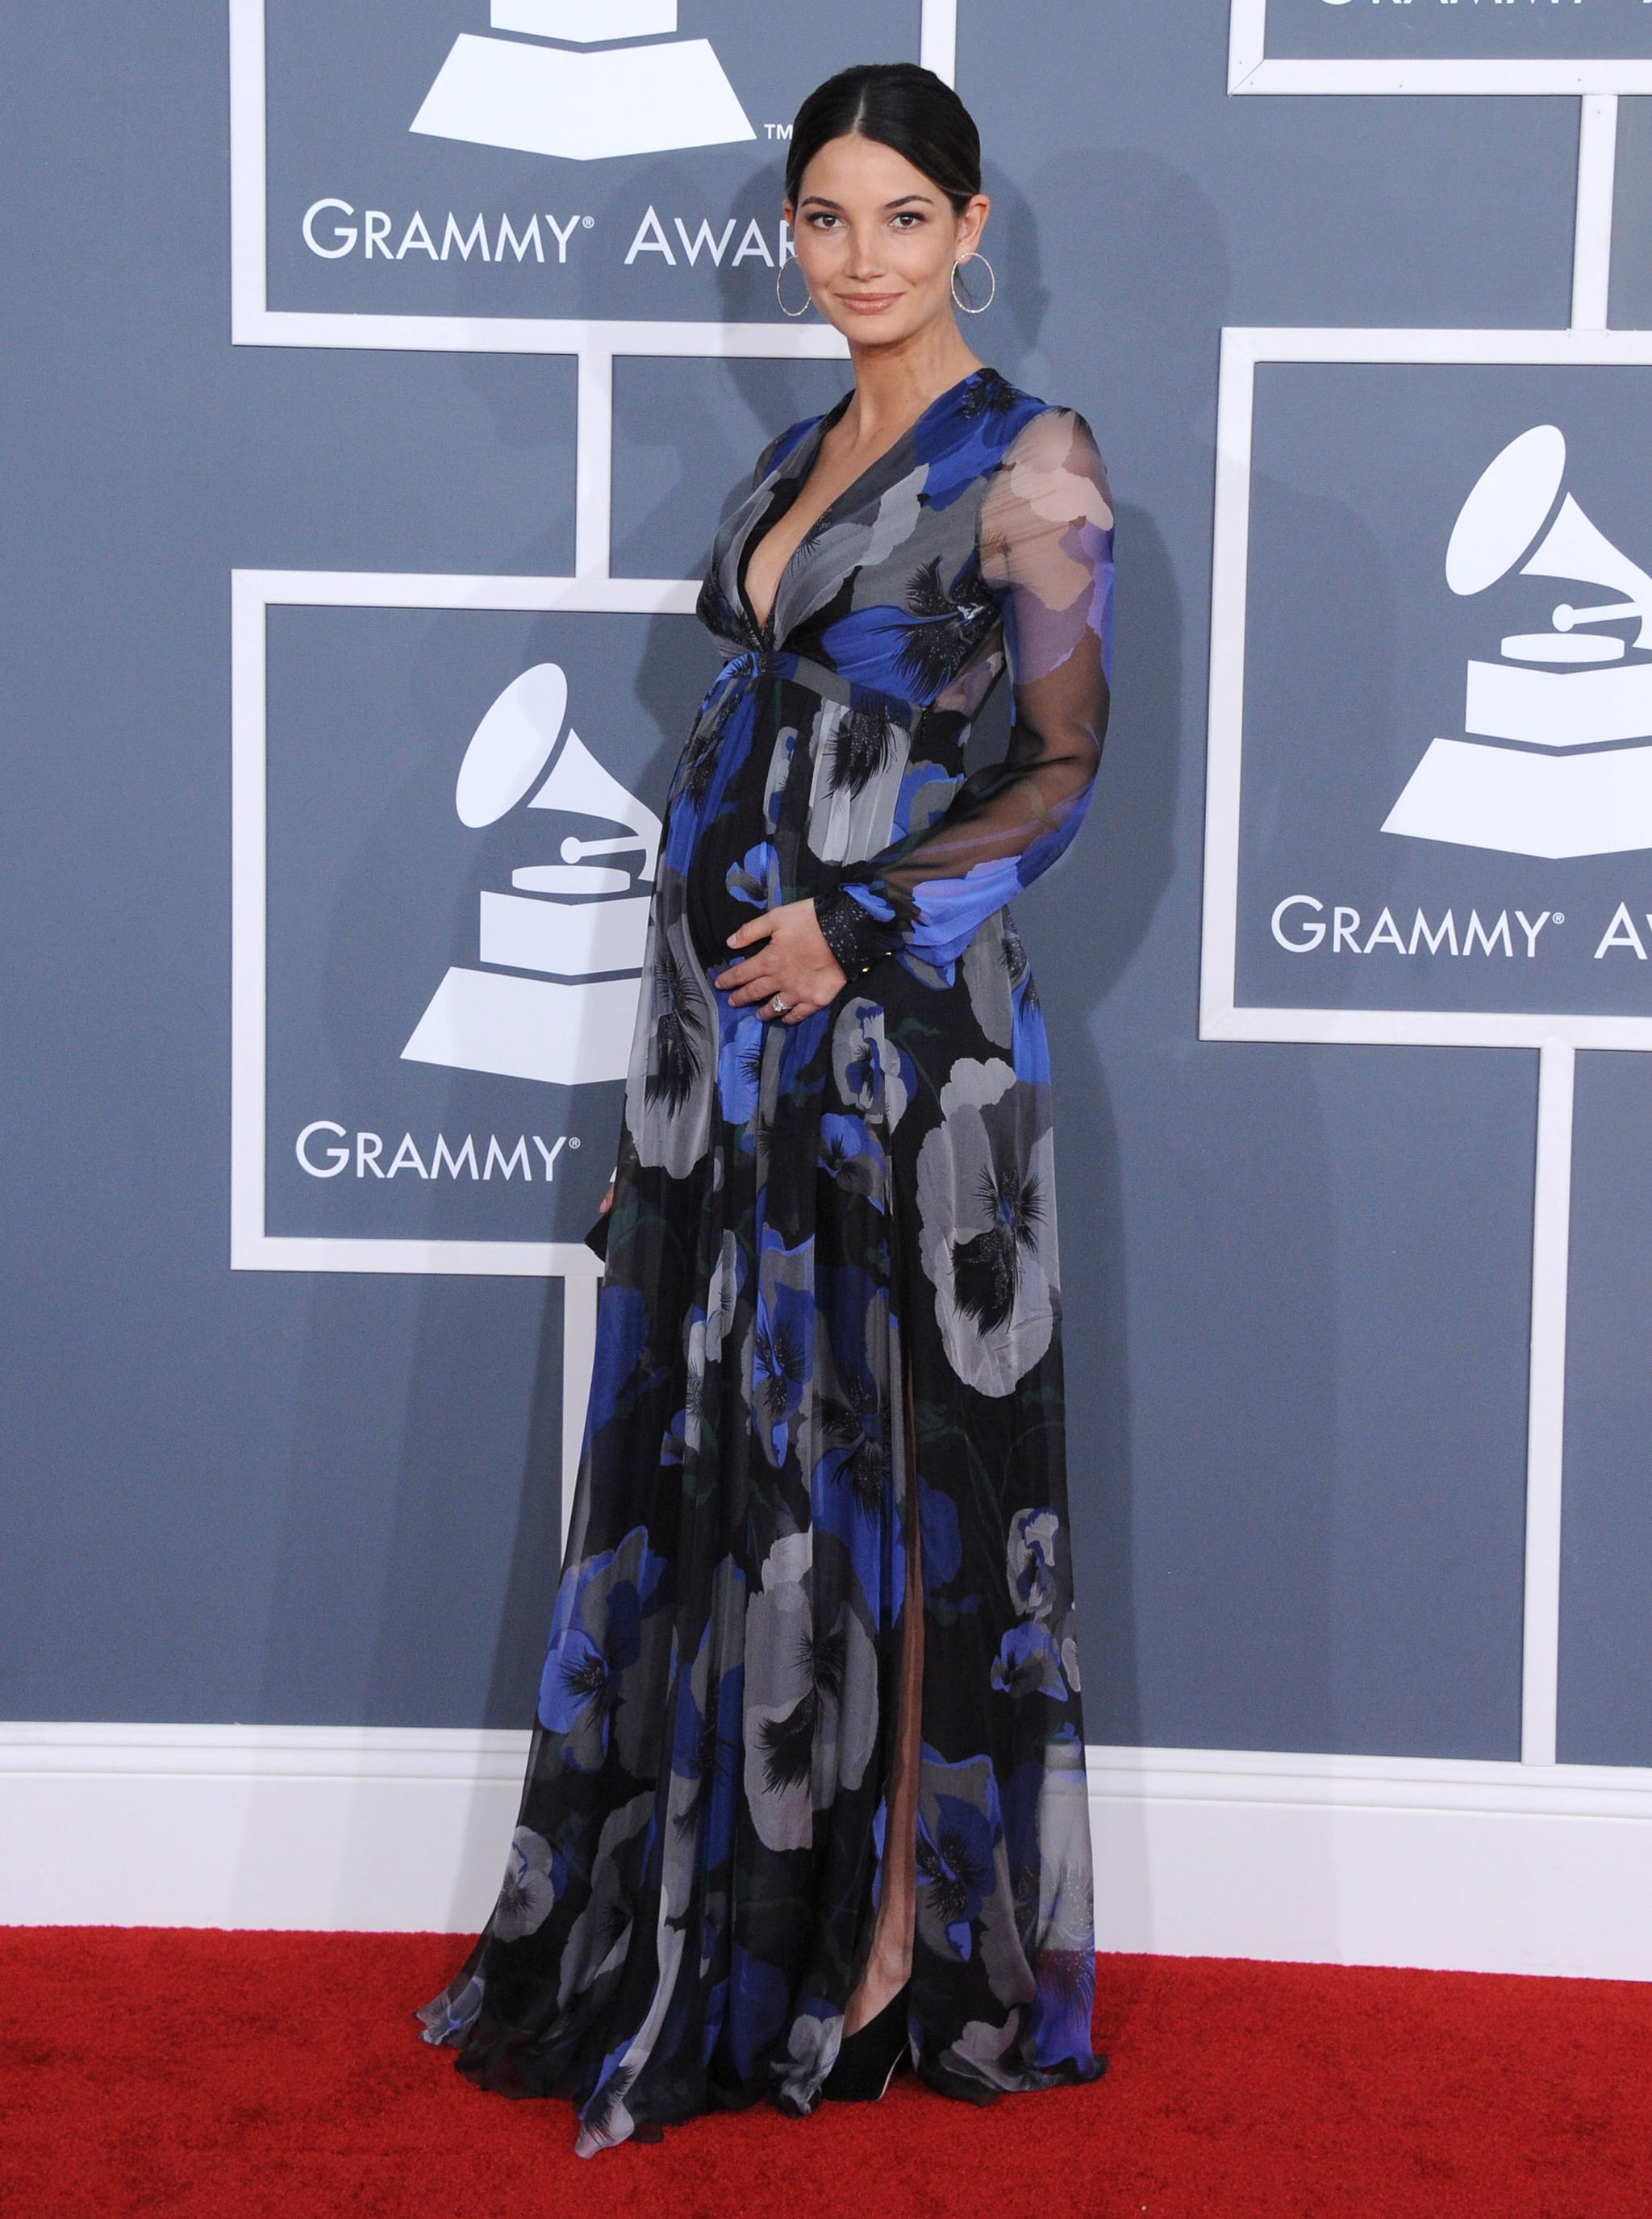 Lily Aldridge at the Grammy Awards in Los Angeles